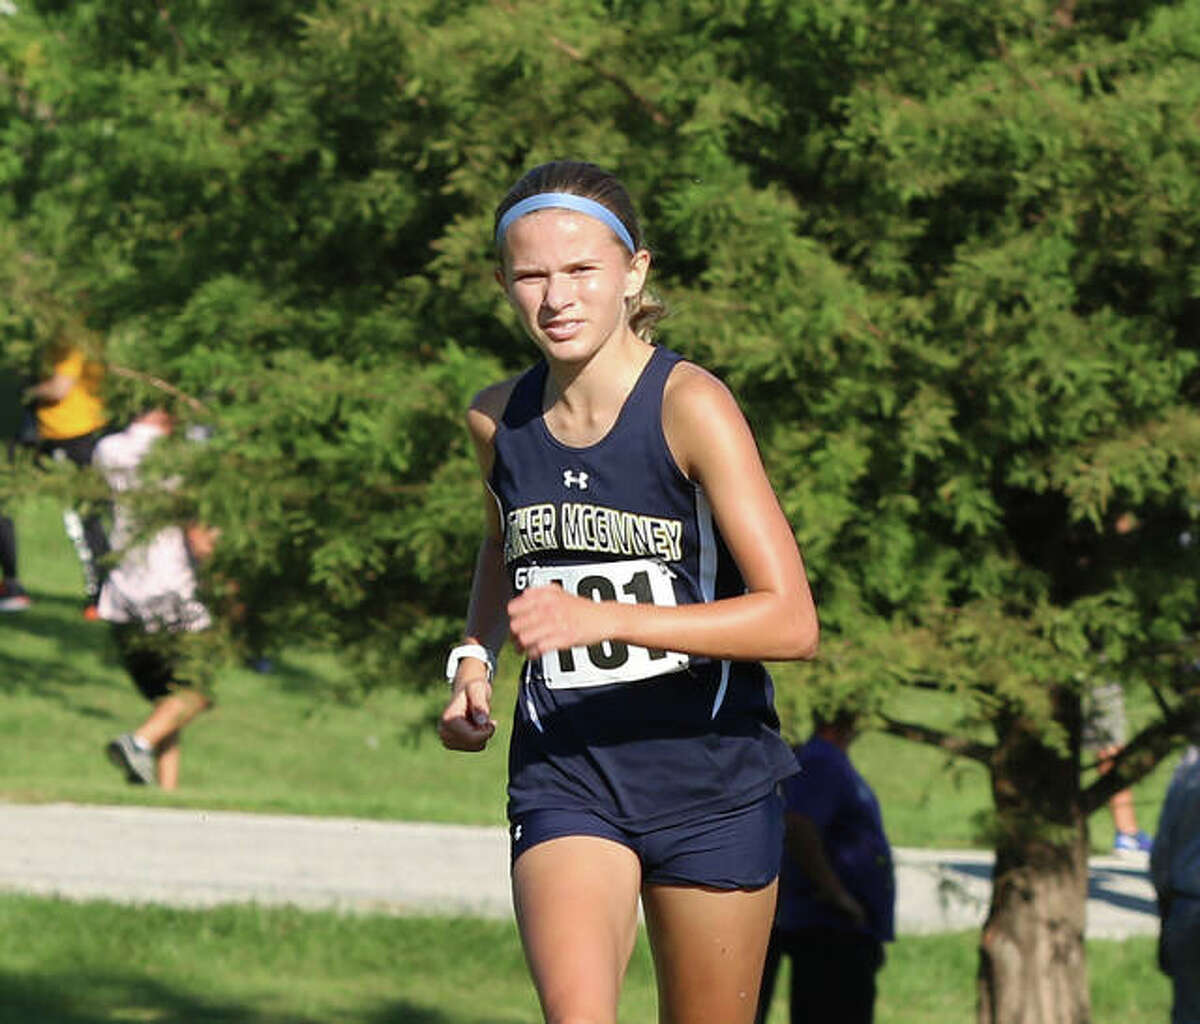 Father McGivney freshman Elena Rybak, shown nearing the finish in her win at the Highland Invite a week earlier, posted the fastest time in the state by a Class 1A girl while winning the Freeburg Invite on Saturday in Smithton.